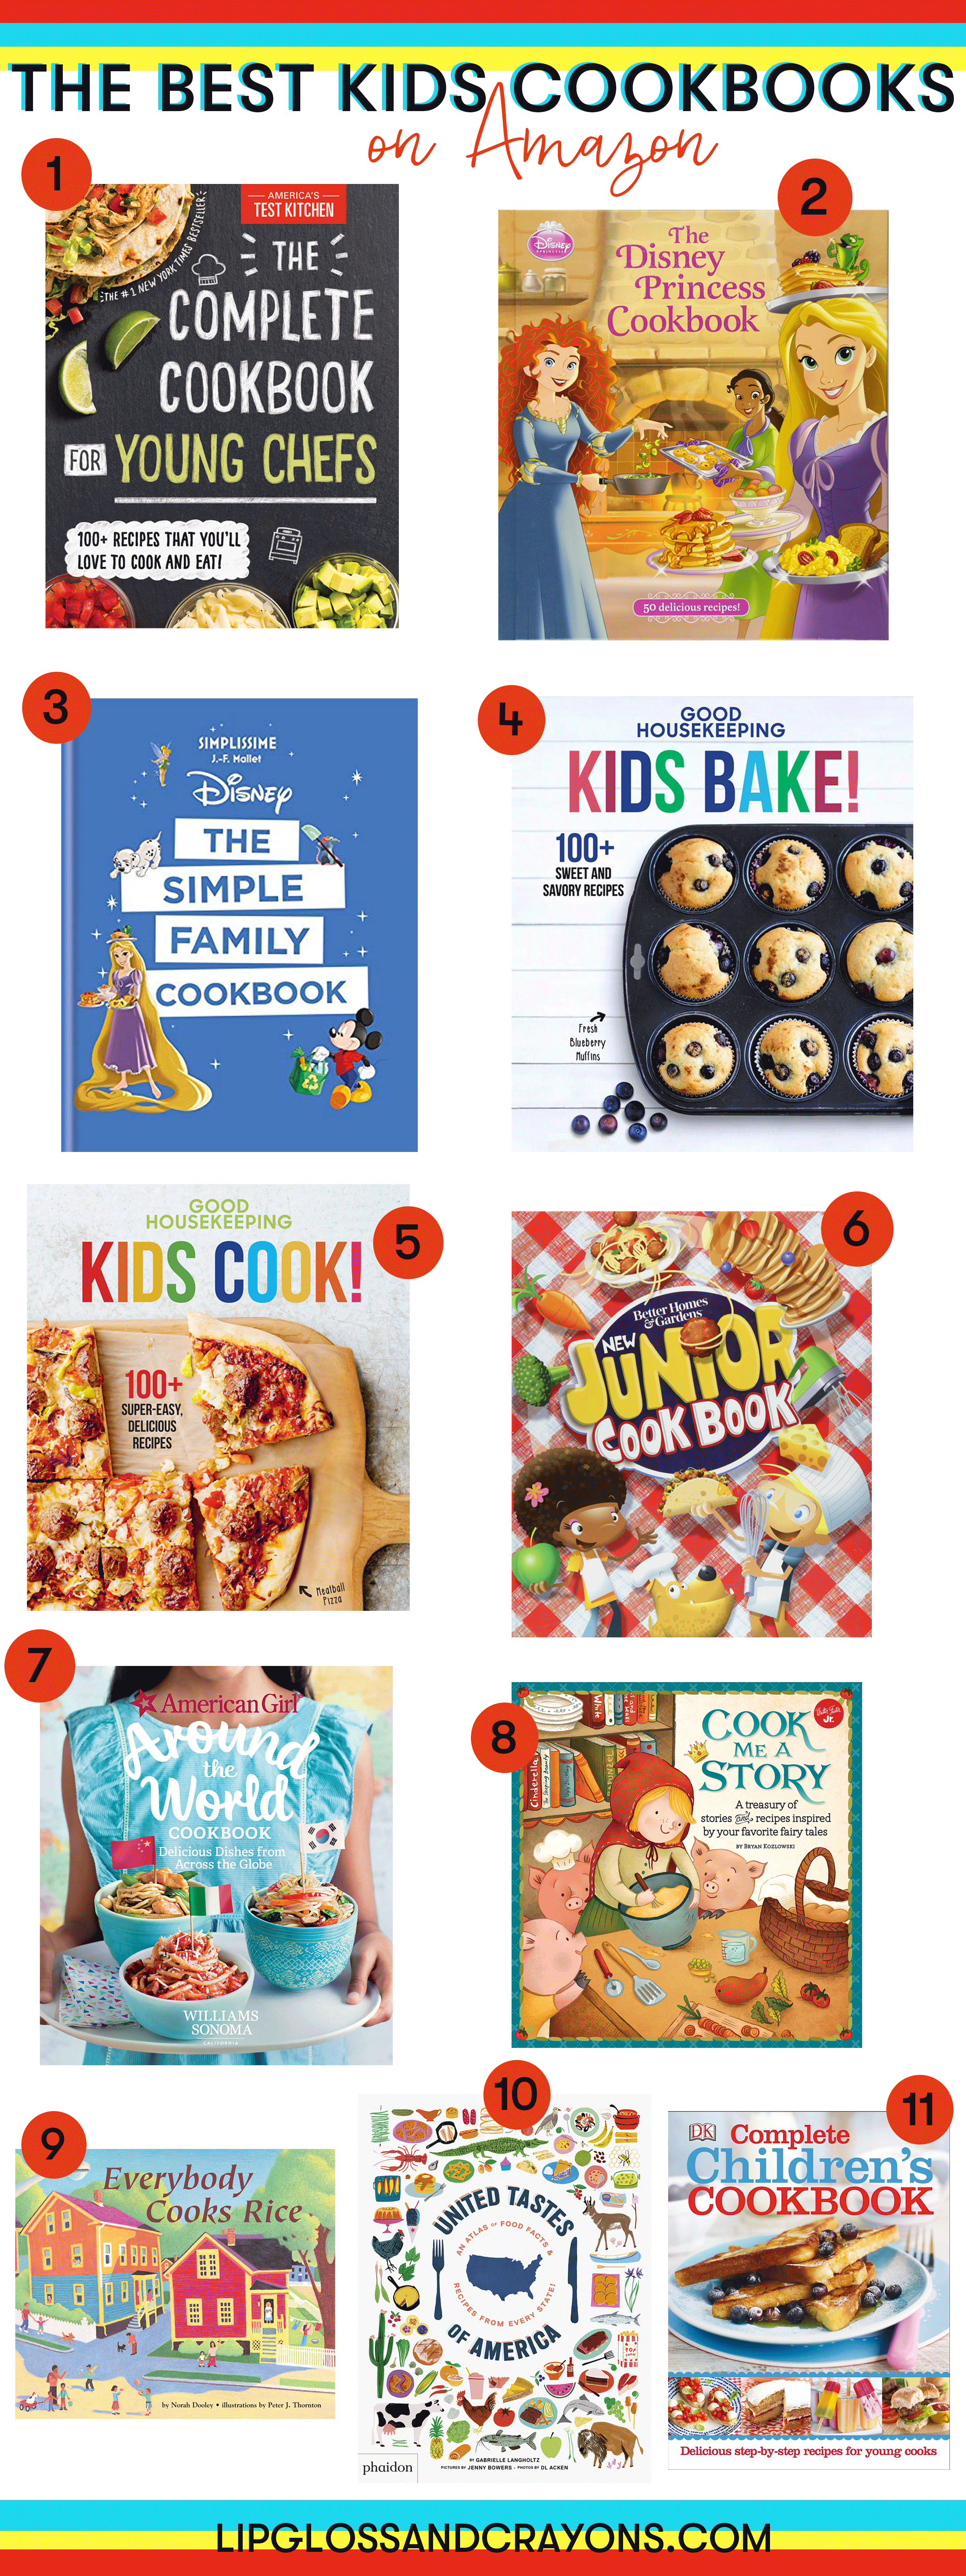 Want to start baking with kids in your family? These cookbooks are a great place to start!